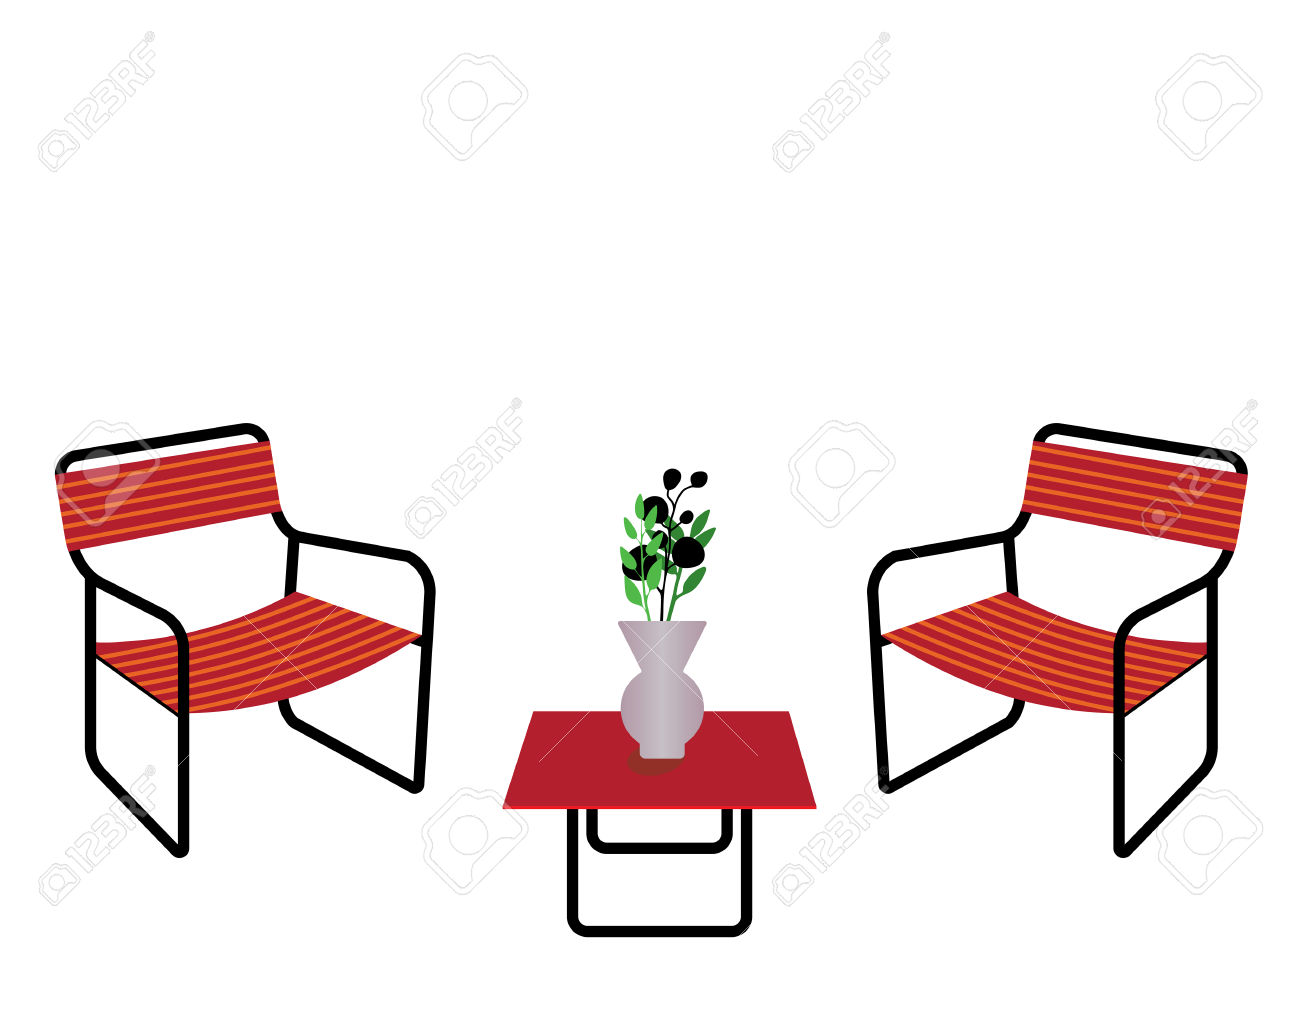 366 Outdoor Seating Stock Illustrations, Cliparts And Royalty Free.